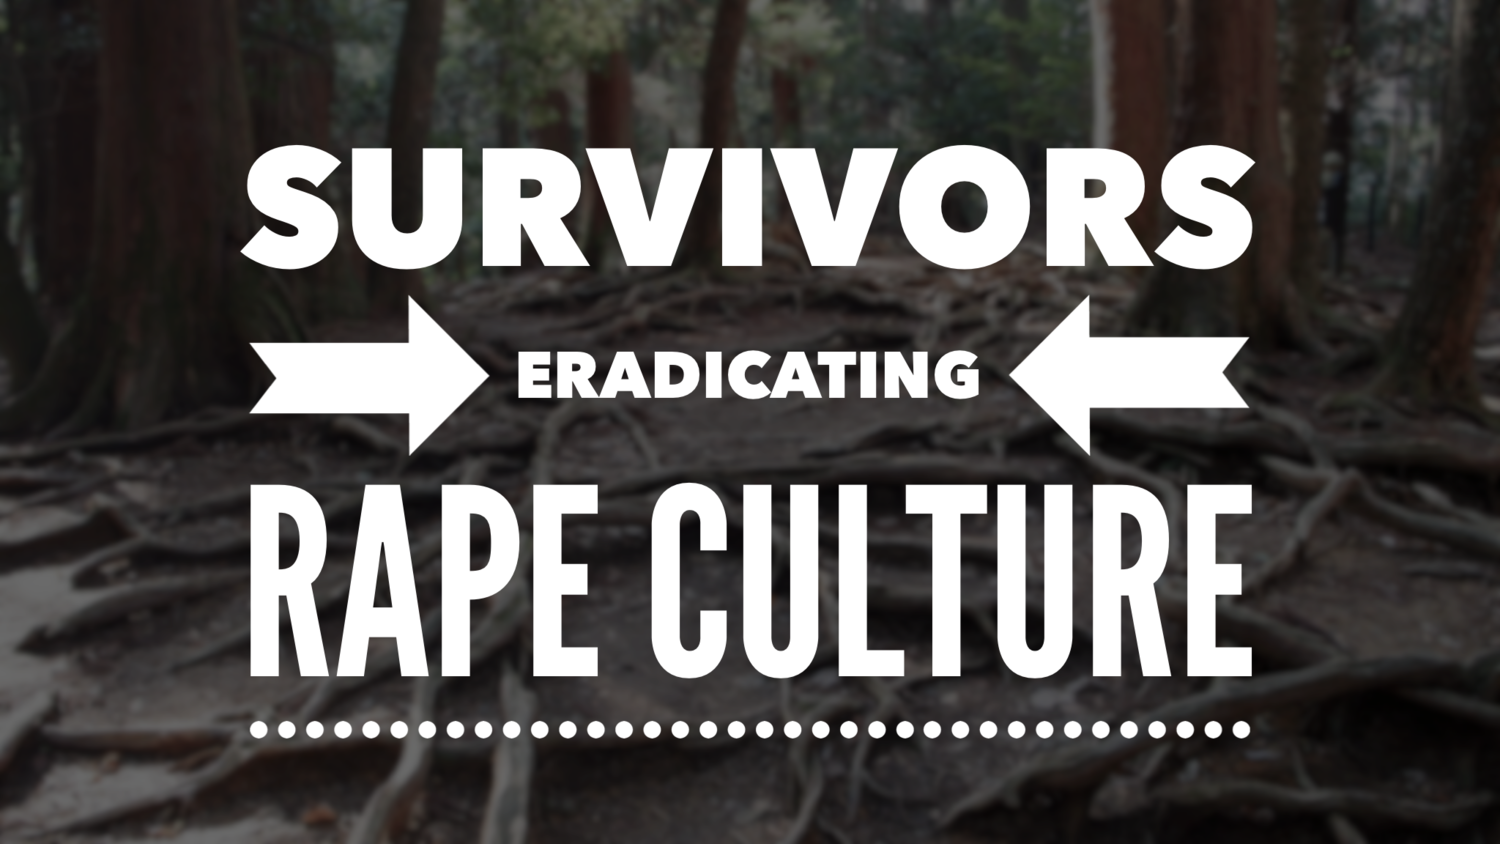 Survivors Eradicating Rape Culture